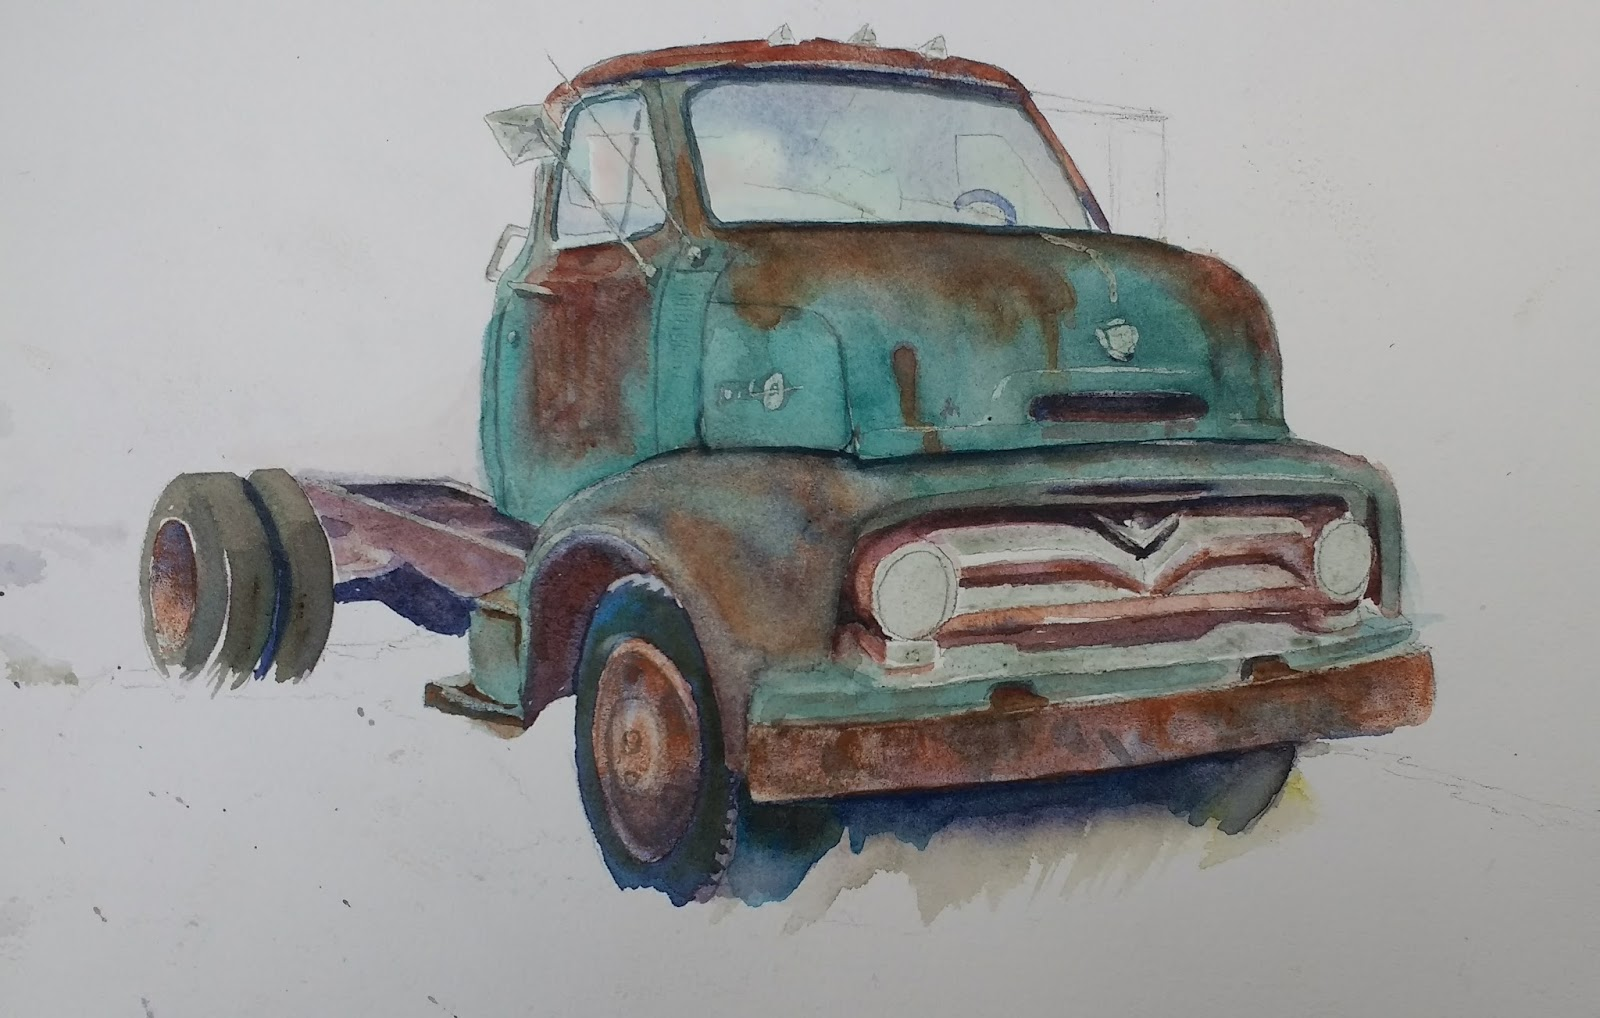 Chris Campbell Watercolors 1955 Ford Truck F100 Side Mirrors If You Want Your To Be Similar This Color Ive Put Below Some Possible Combinations That Would Work I Realize We Dont All Have The Same